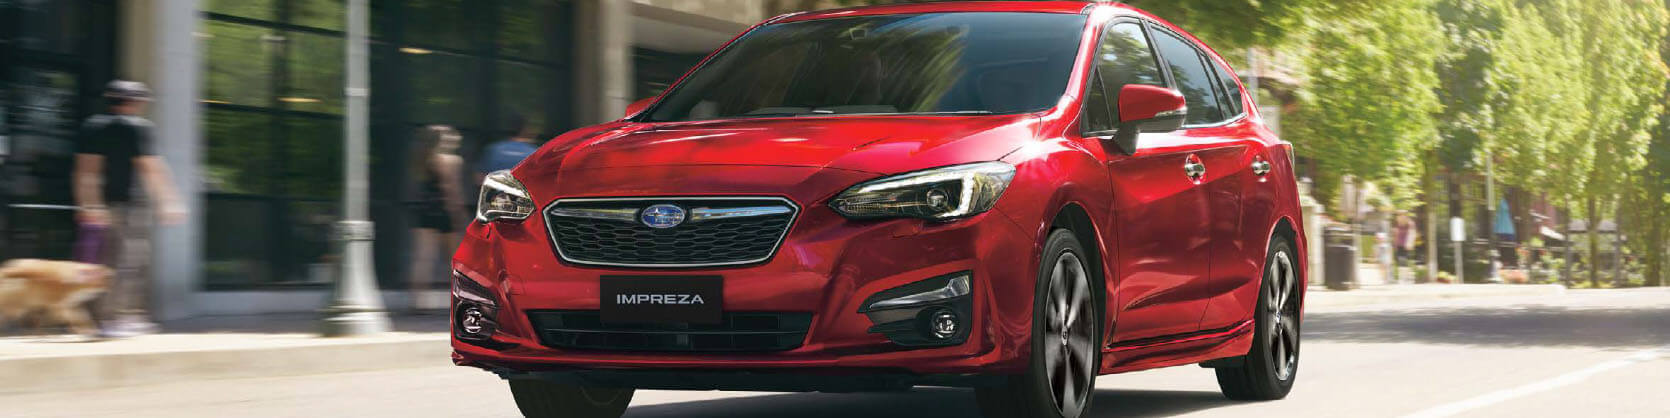 New Subaru Impreza for sale in Sunshine Coast - Cricks Subaru